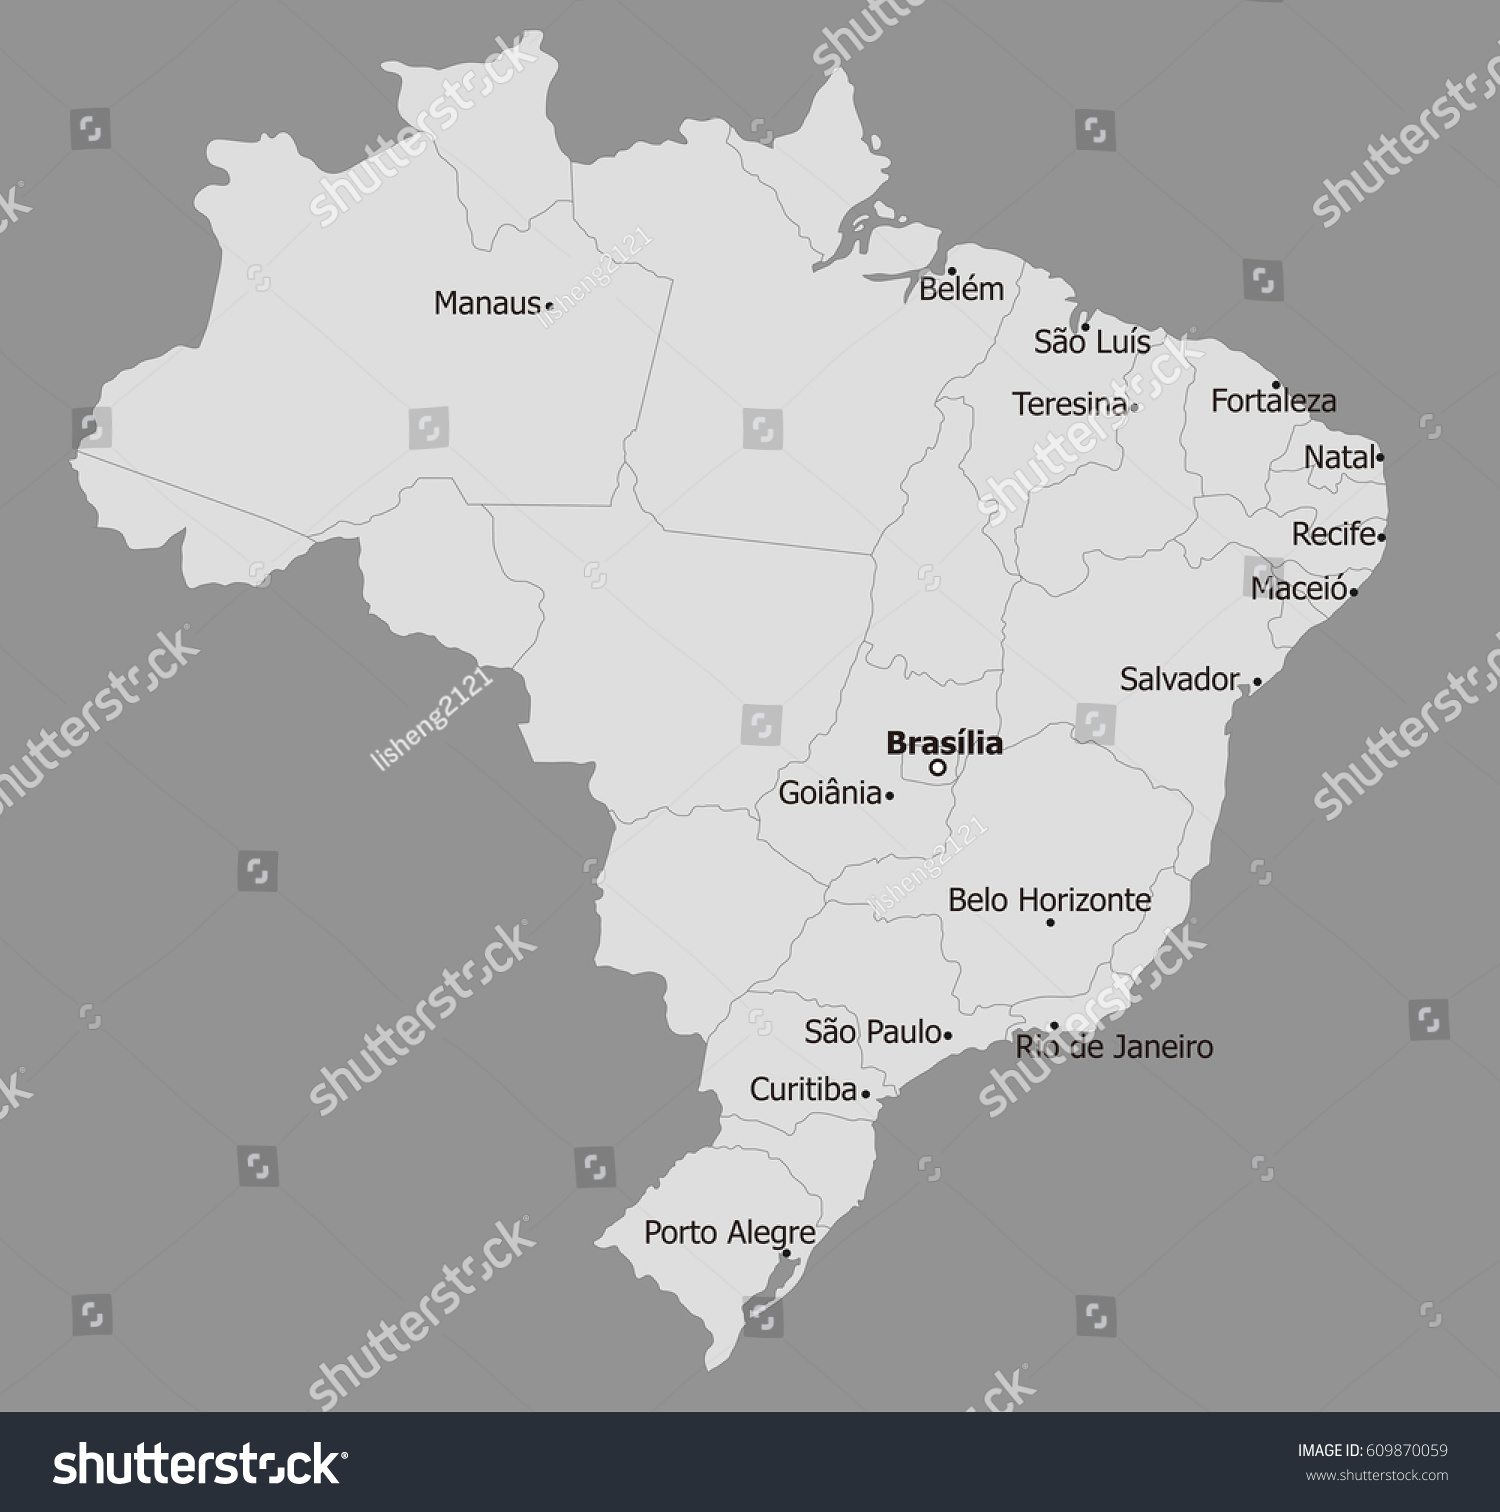 Brazil Map Main Cities Stock Vector (Royalty Free) 609870059 ...